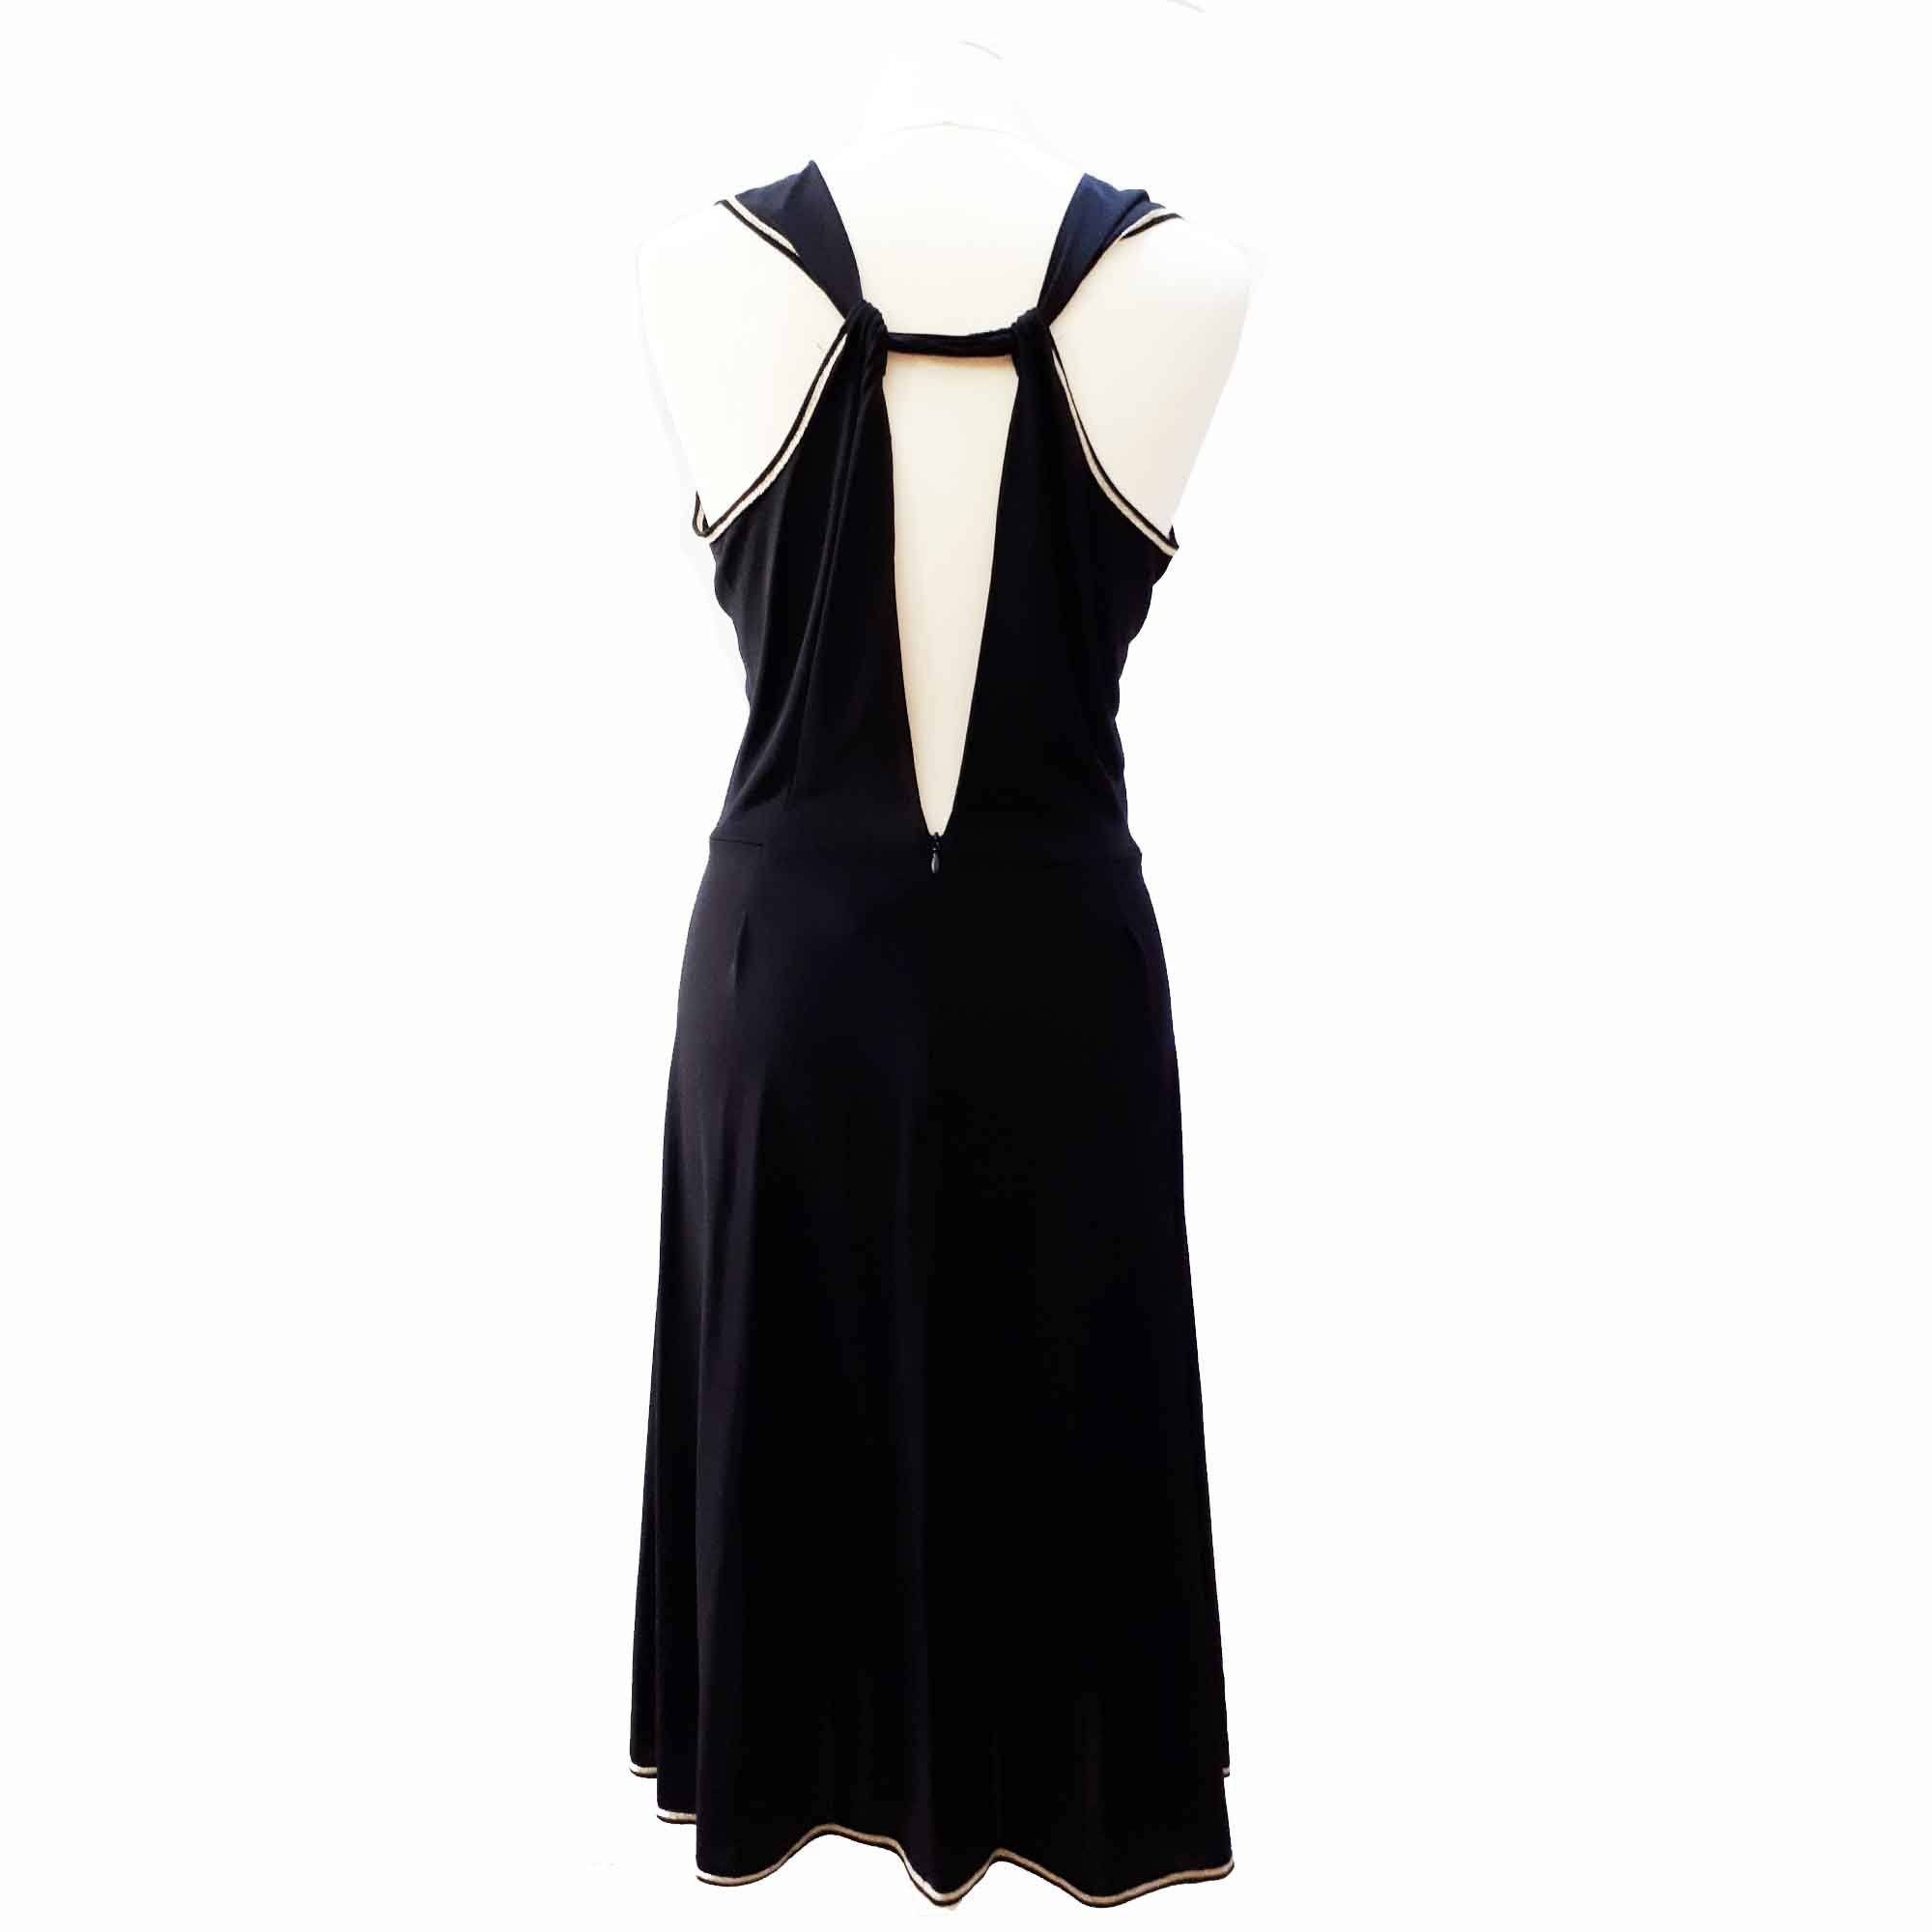 Saint Laurent Sleeveless Black Dress